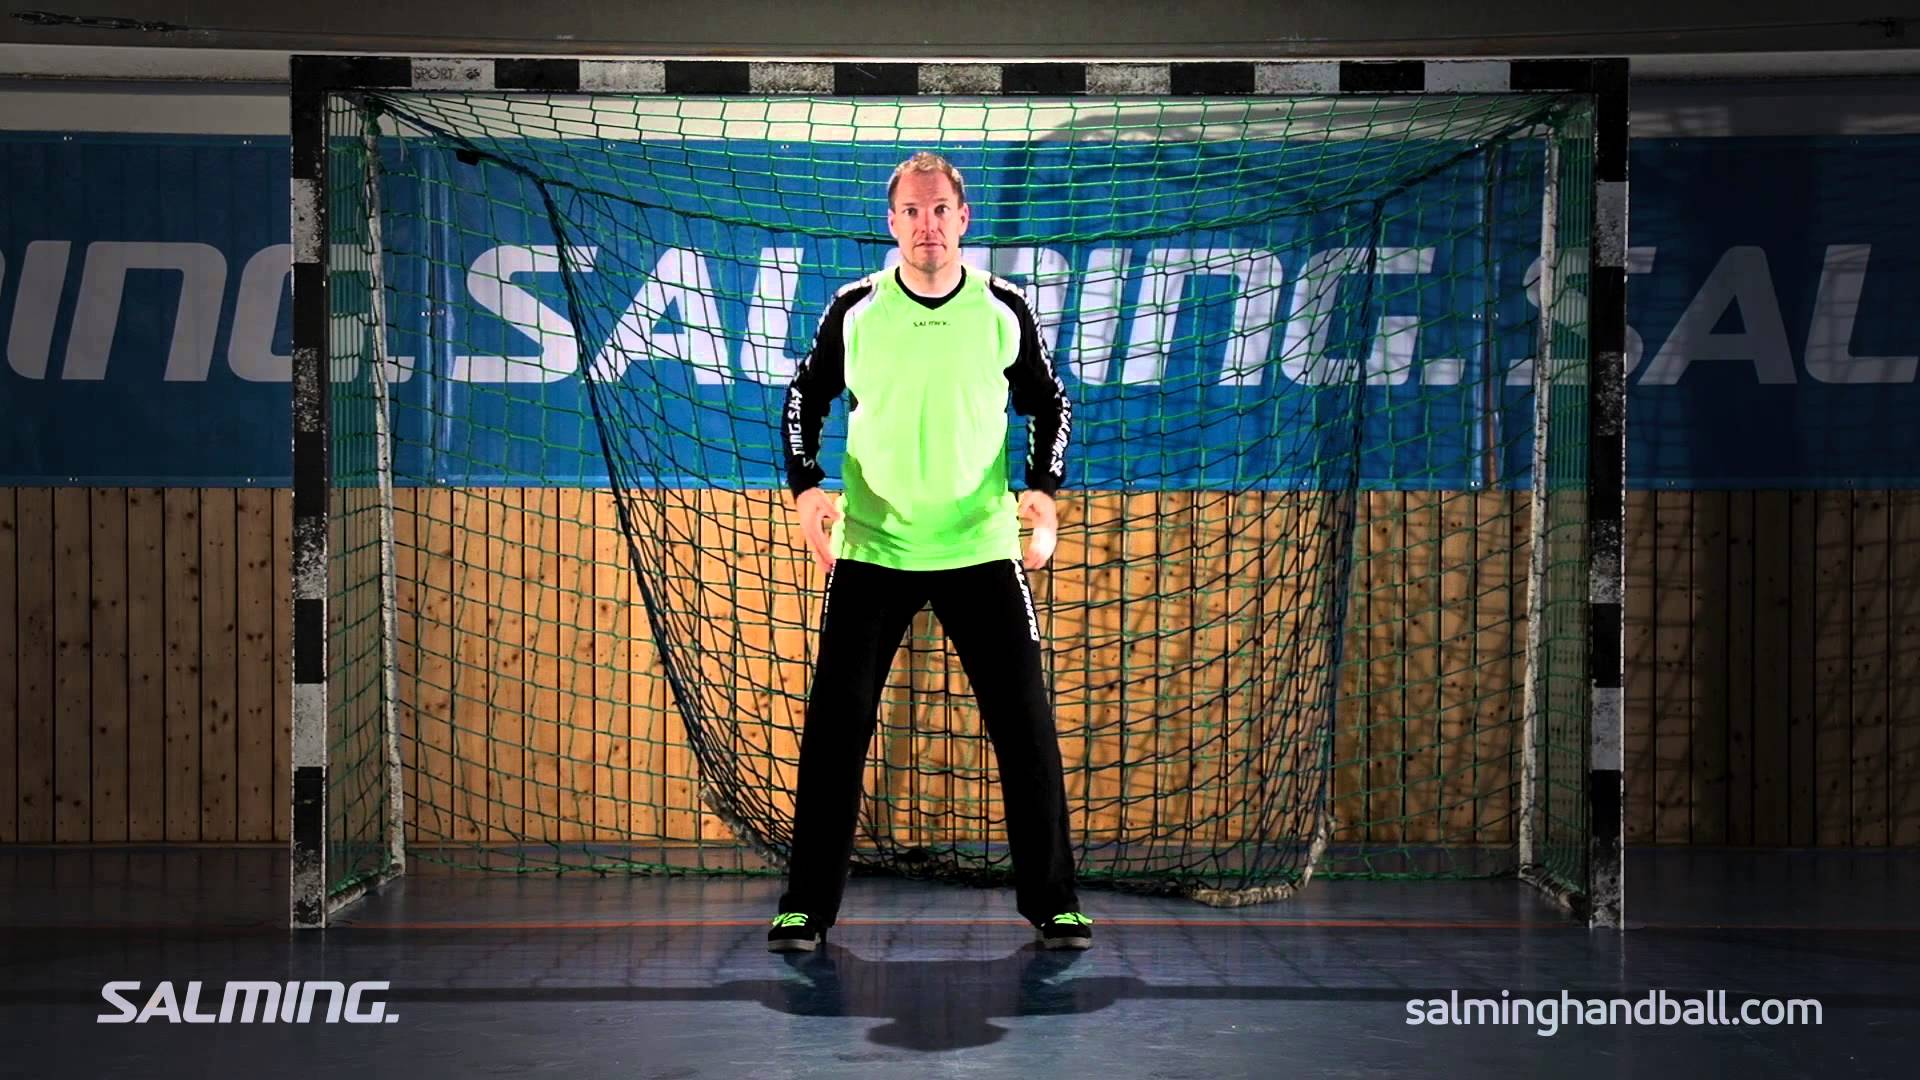 Salming Handball Academy - Goalie - Starting position - YouTube